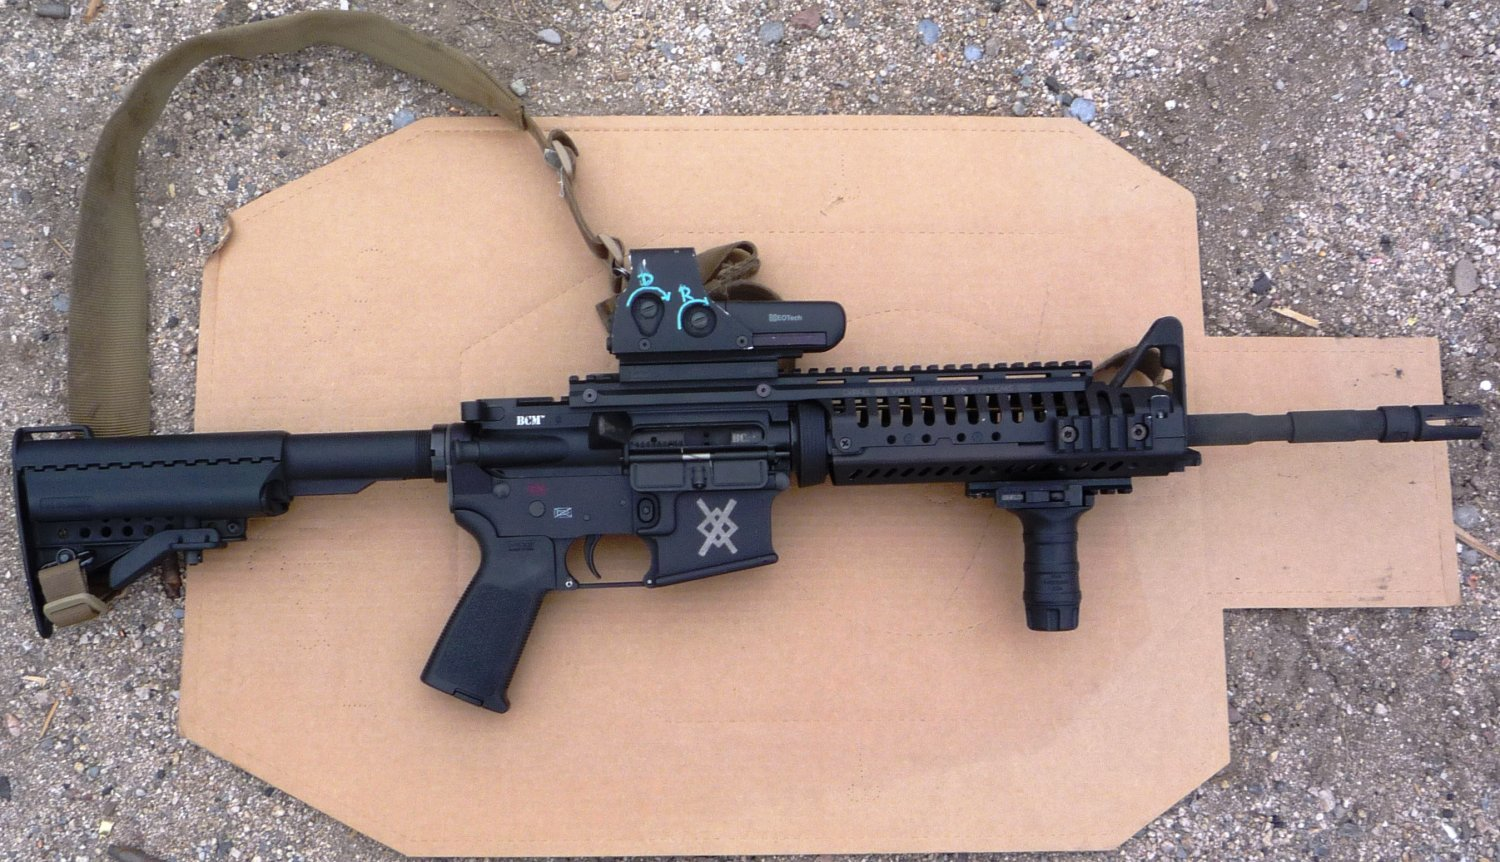 Mike Pannone BCM M4 Upper Receiver 1 The Big M4 Myth: Fouling caused by the direct impingement gas system makes the M4/M4A1 Carbine unreliable.